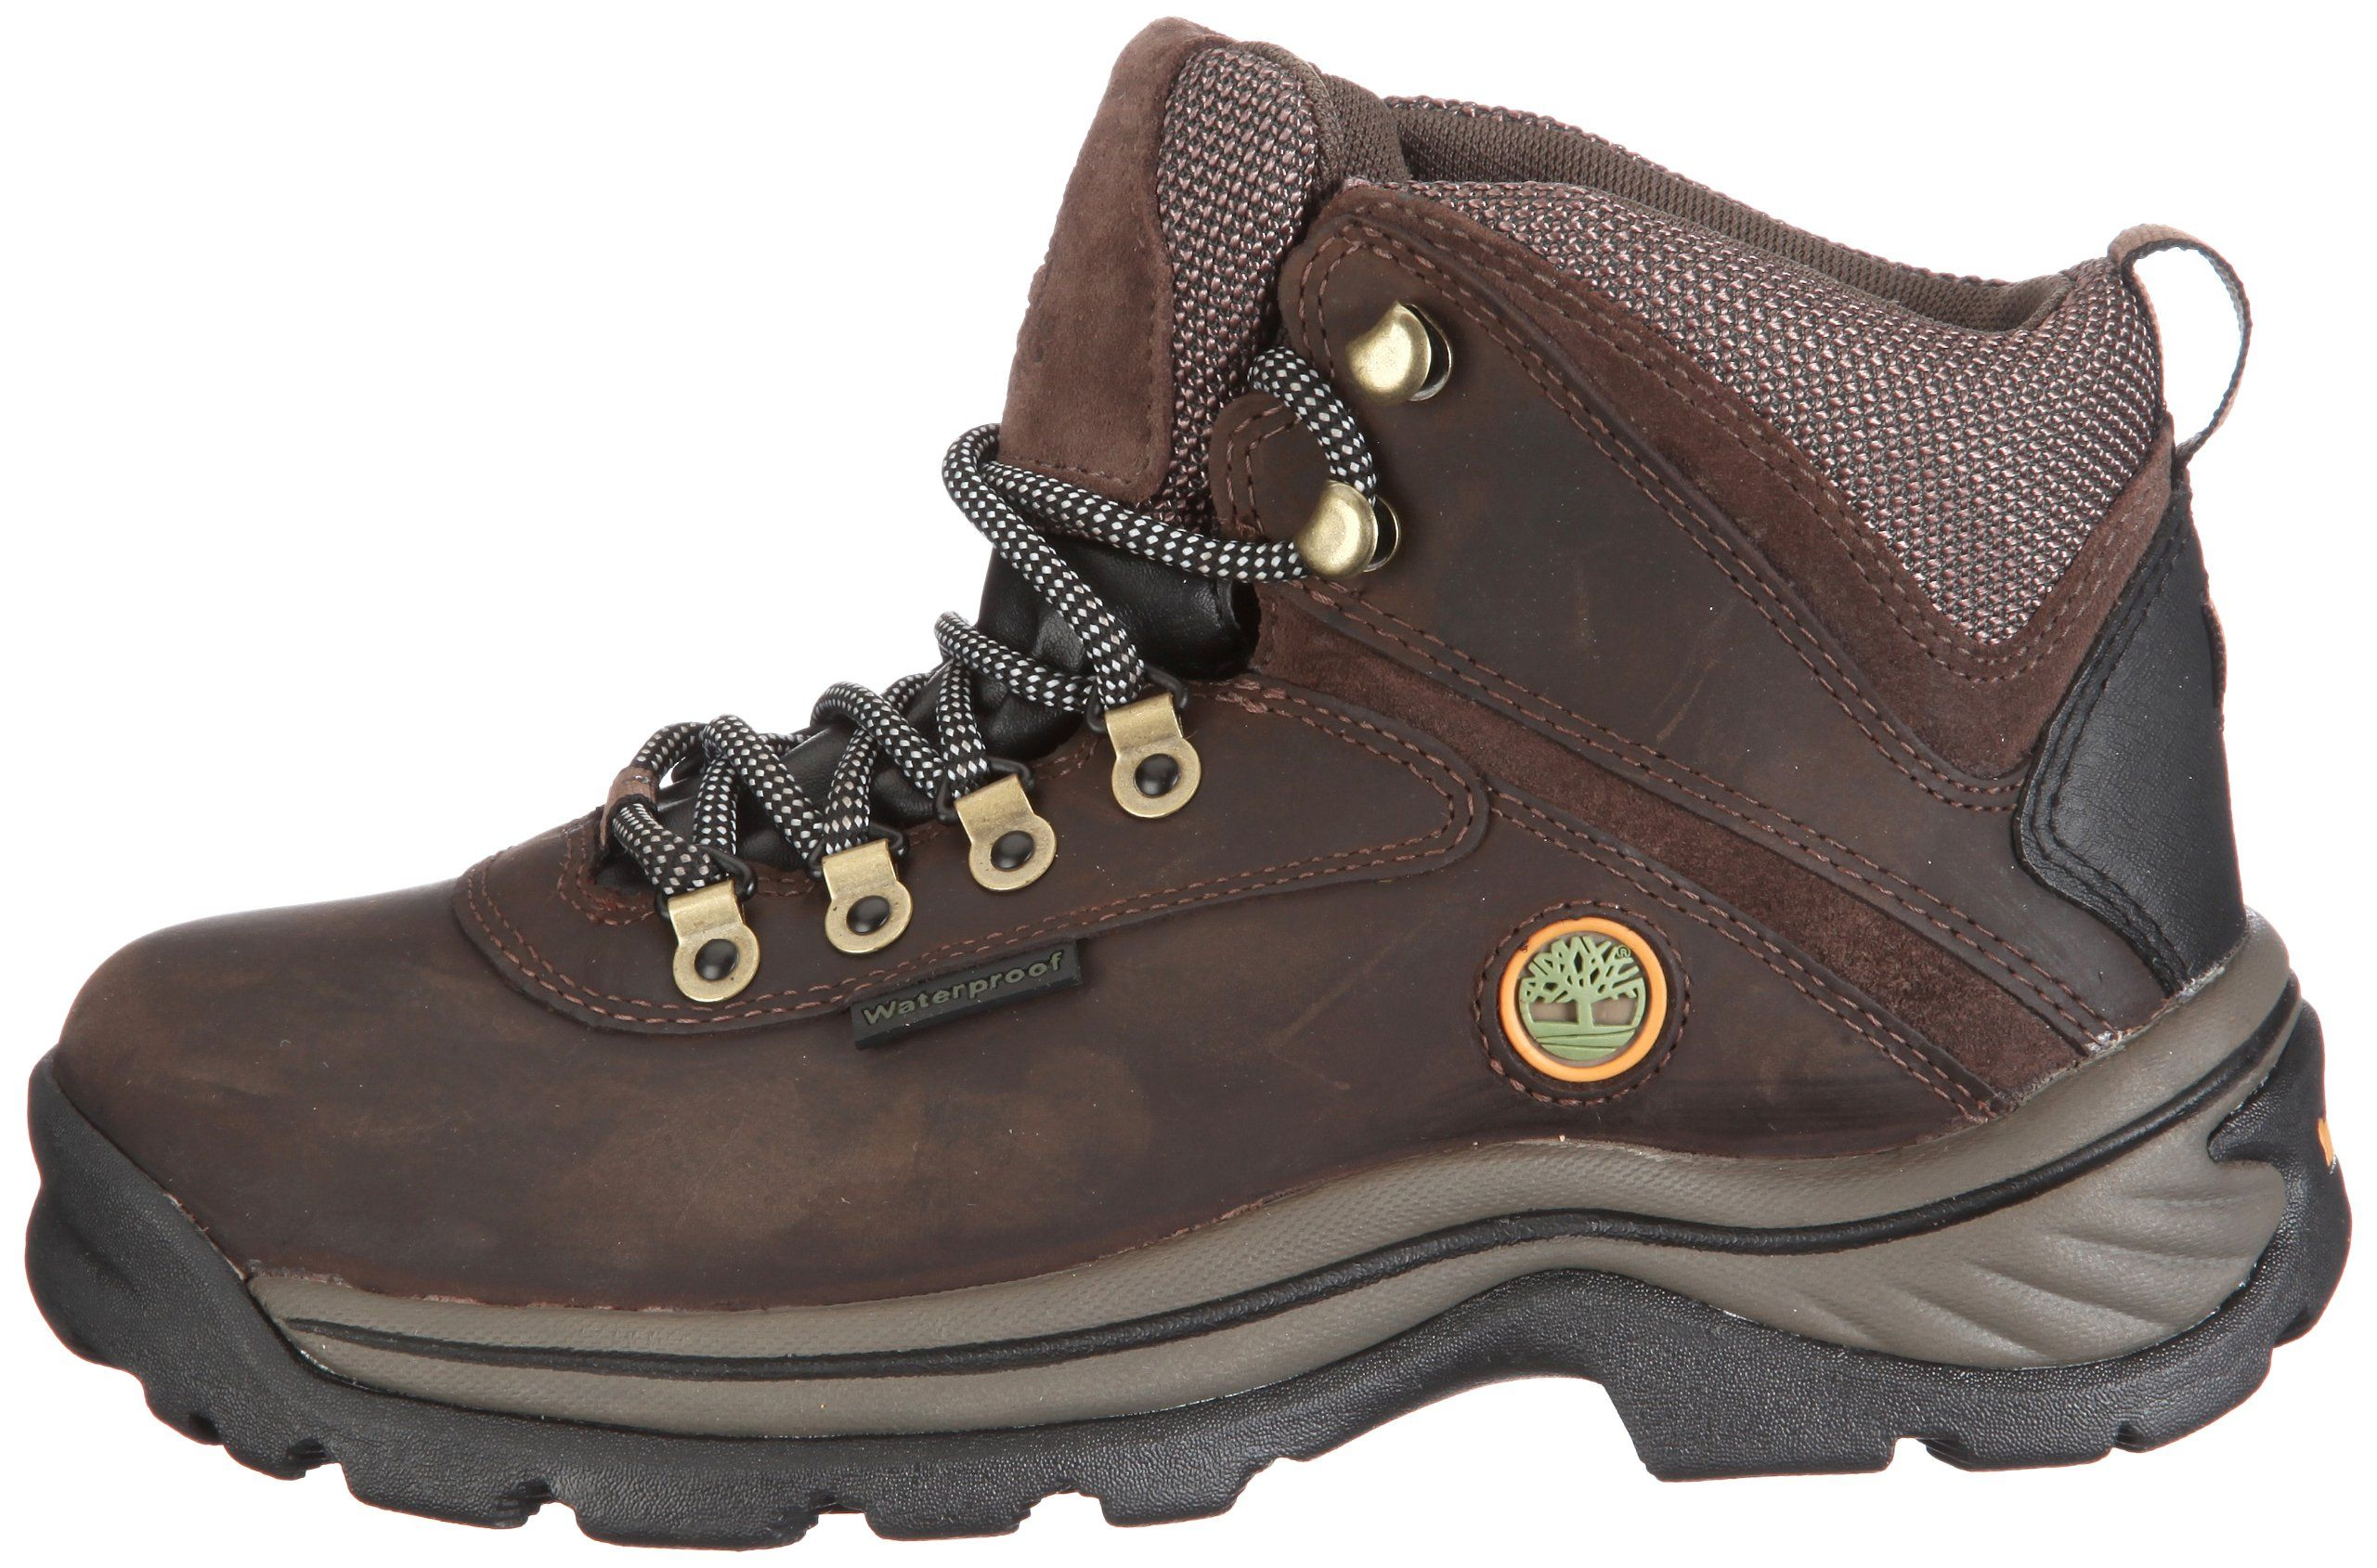 ff58a3355f Timberland Womens White Ledge Mid Ankle BootBrown7.5 W US     Visit the  image link more details. (This is an affiliate link)  timberlandshoesideas